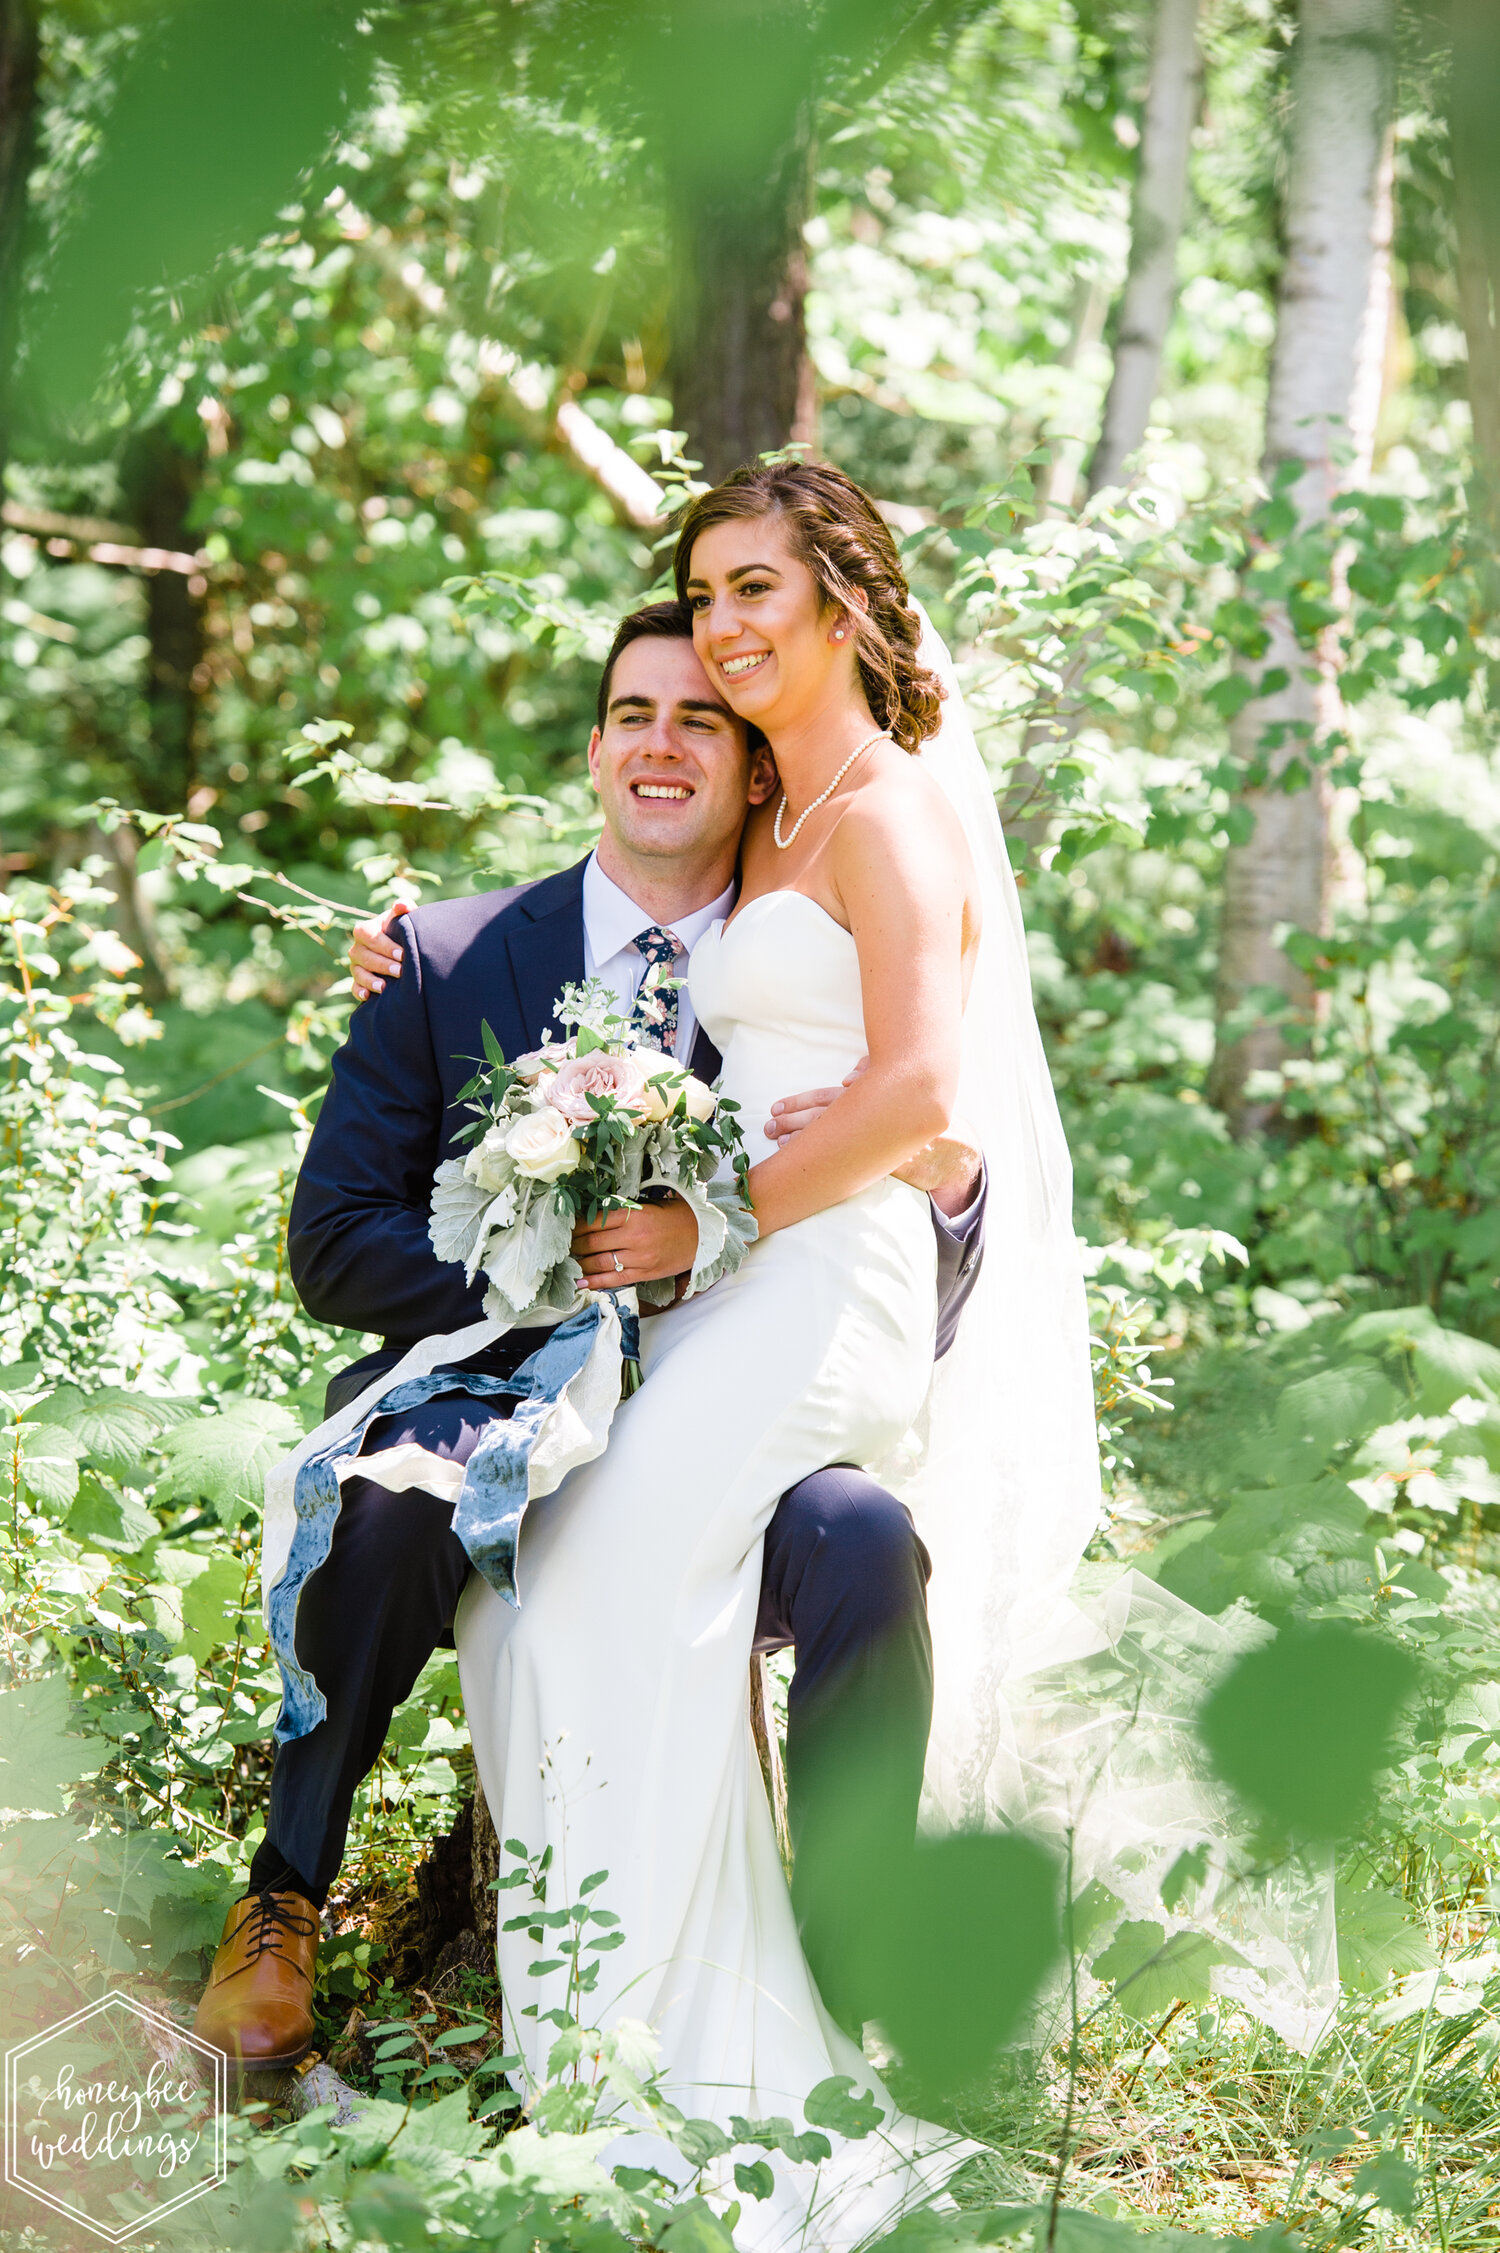 028Glacier National Park Wedding_Glacier Outdoor Center_Honeybee Weddings_Anna & Seth_July 21, 2019-78.jpg